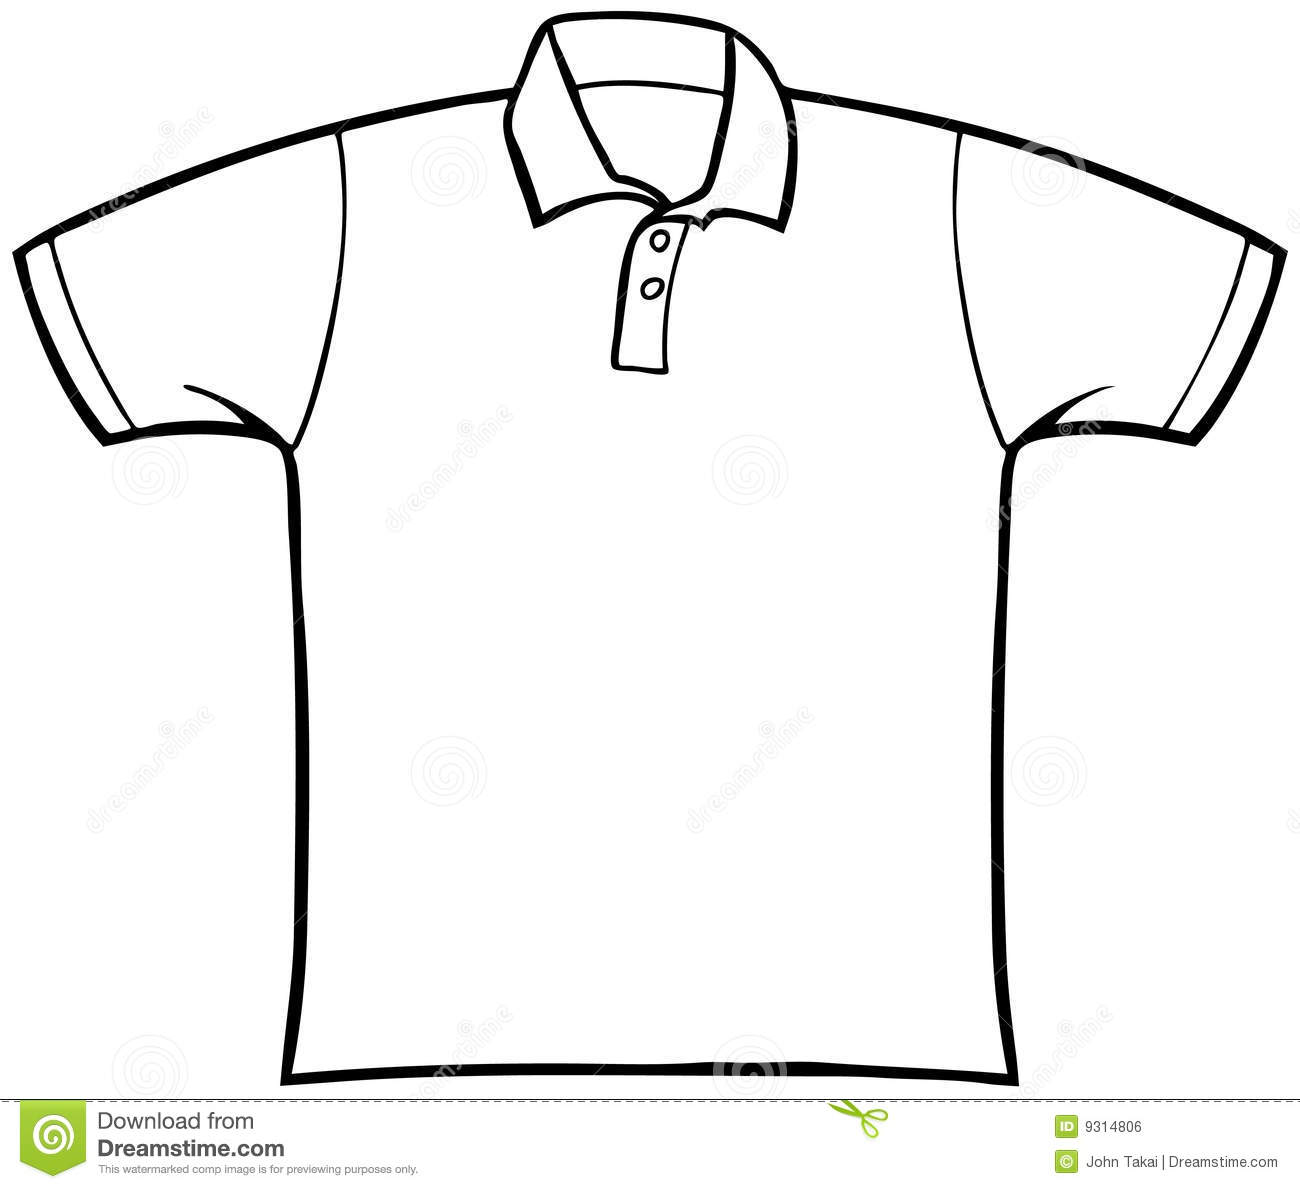 You Can Download Images For Dress Shirt Clipart In Your Computer By